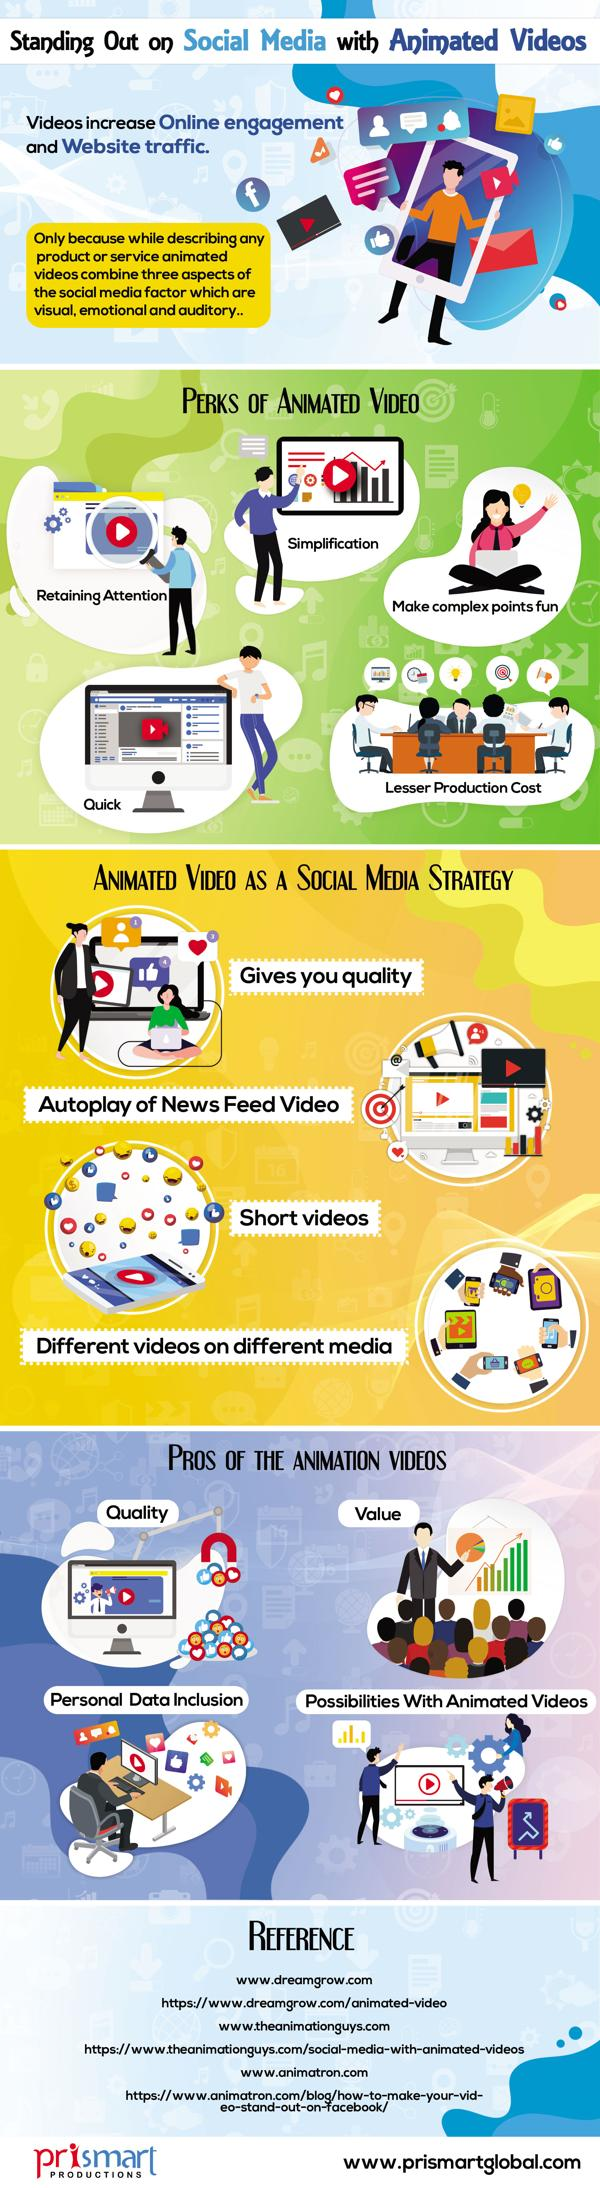 Standing Out on Social Media with Animated Videos 1